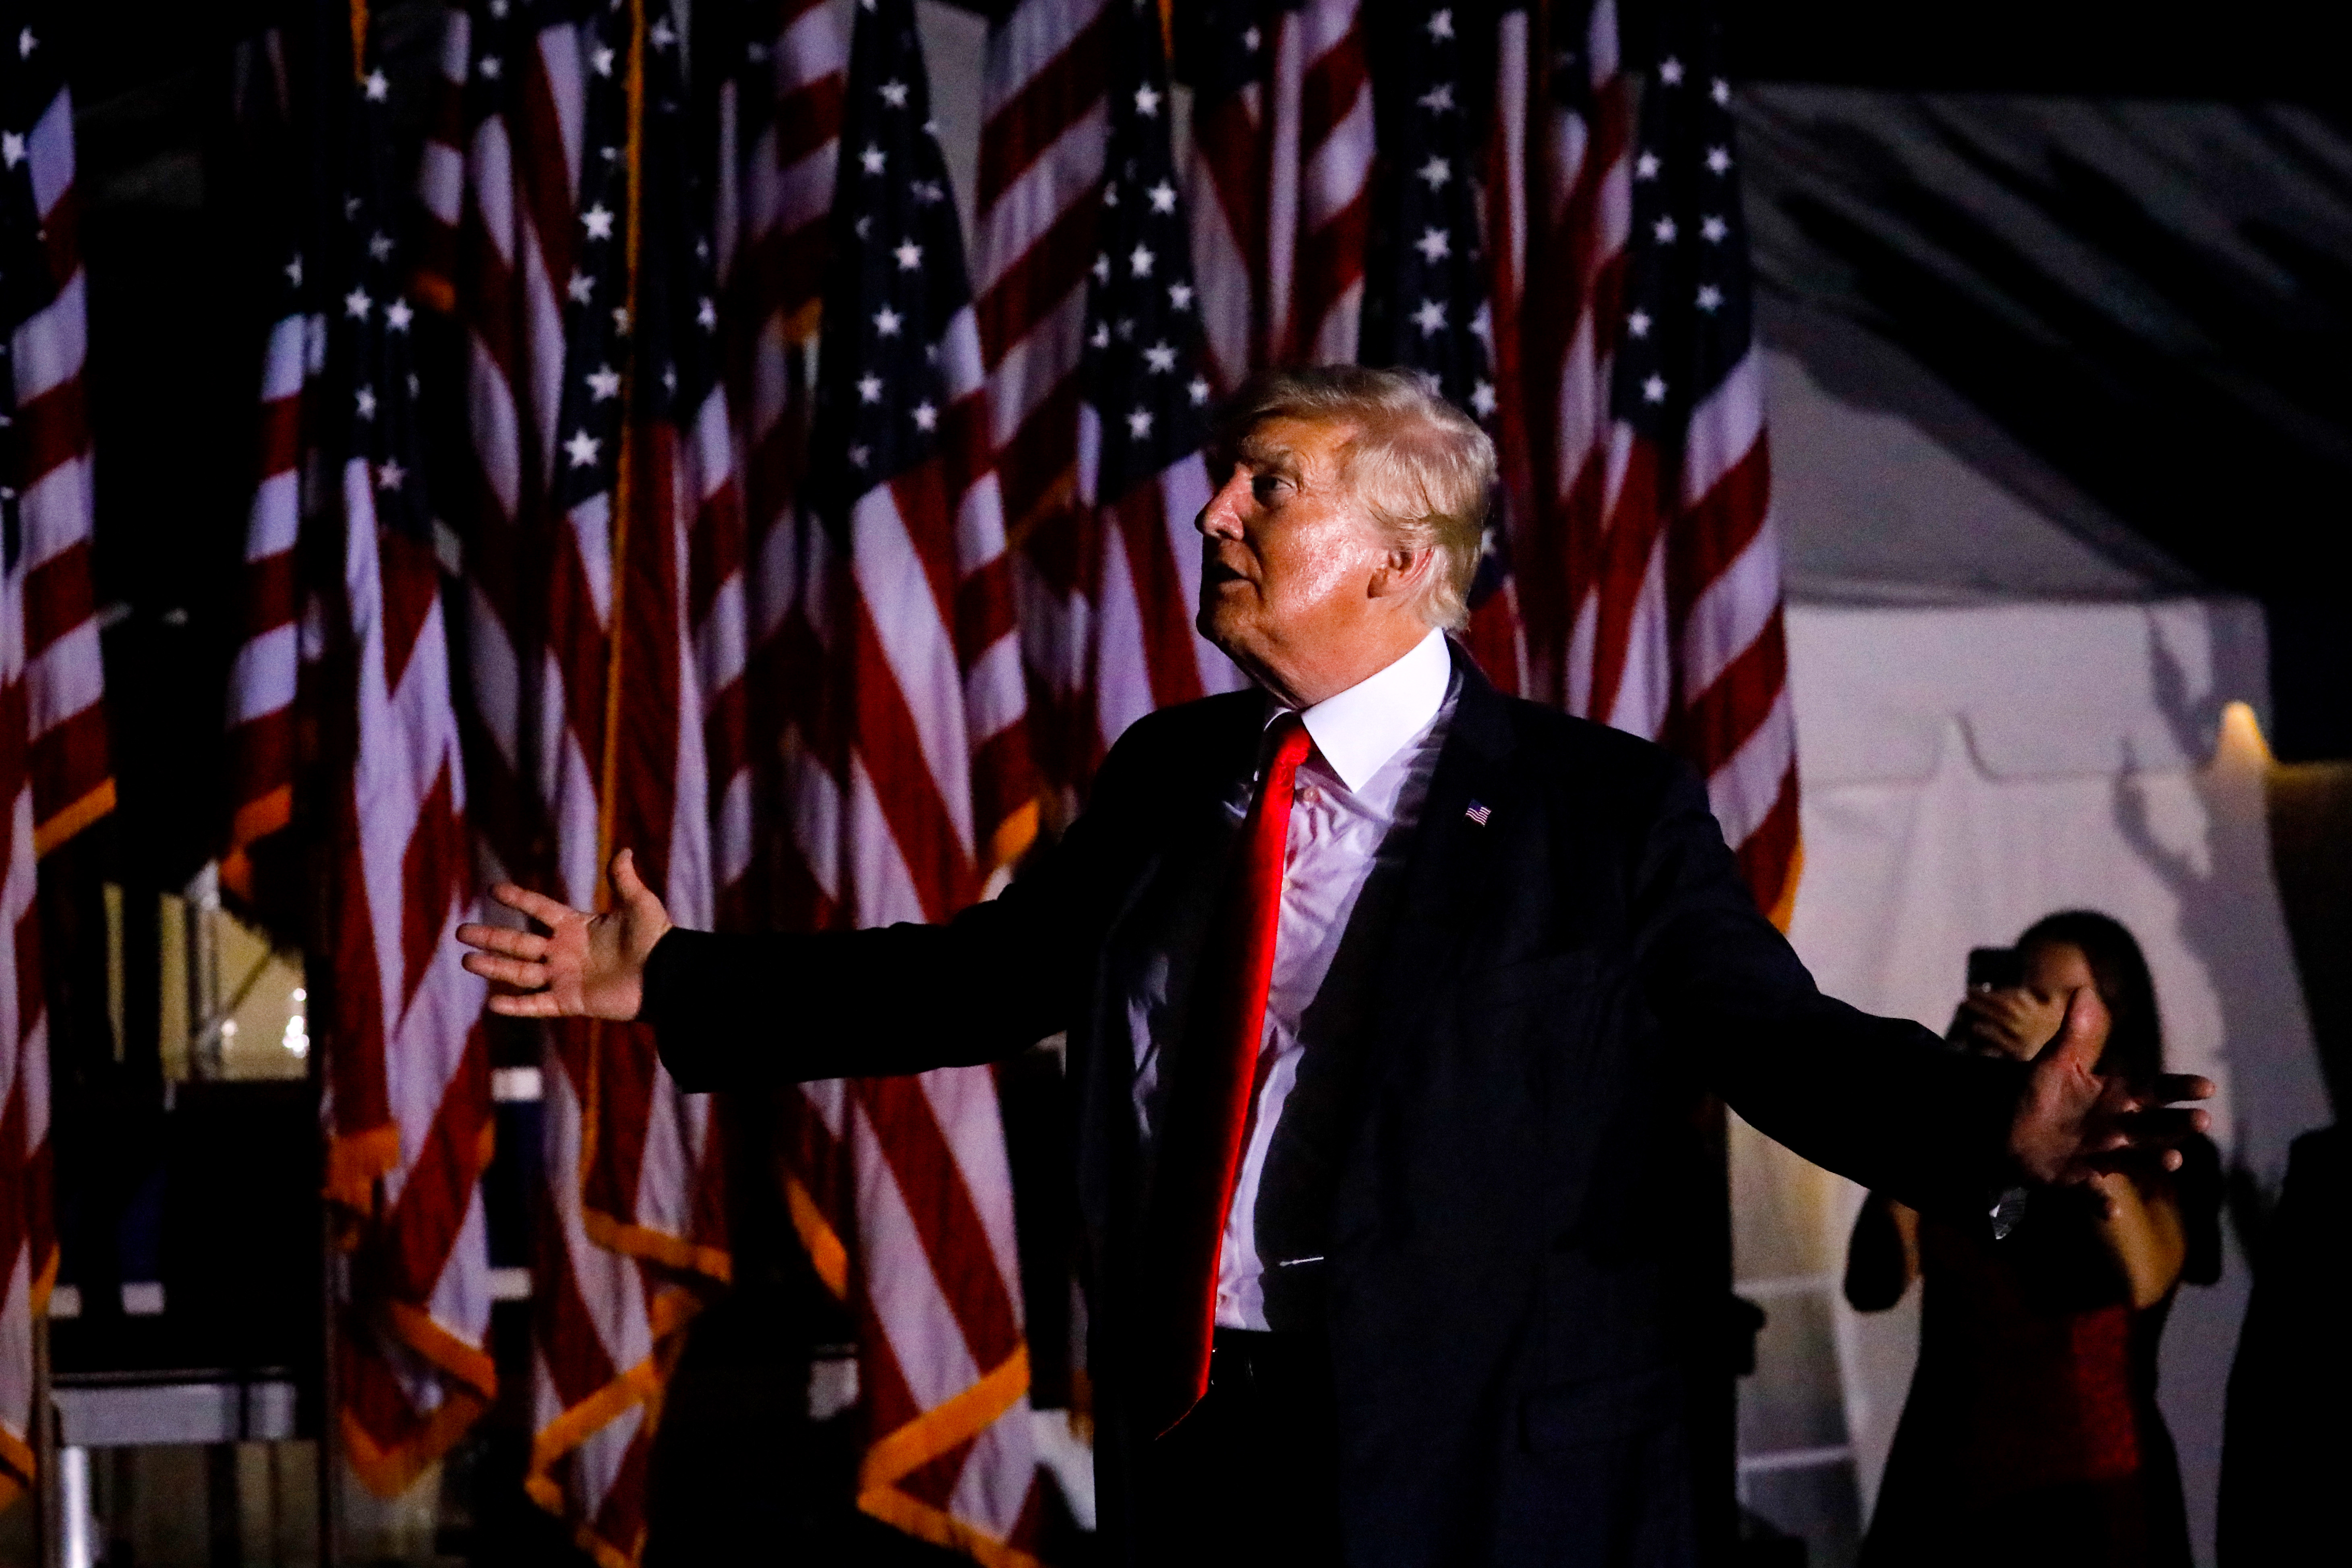 President Donald Trump leaves after a rally on July 3, 2021 in Sarasota, Florida. Co-sponsored by the Republican Party of Florida, the rally marks Trump's further support of the MAGA agenda and accomplishments of his administration. (Photo by Eva Marie Uzcategui/Getty Images)